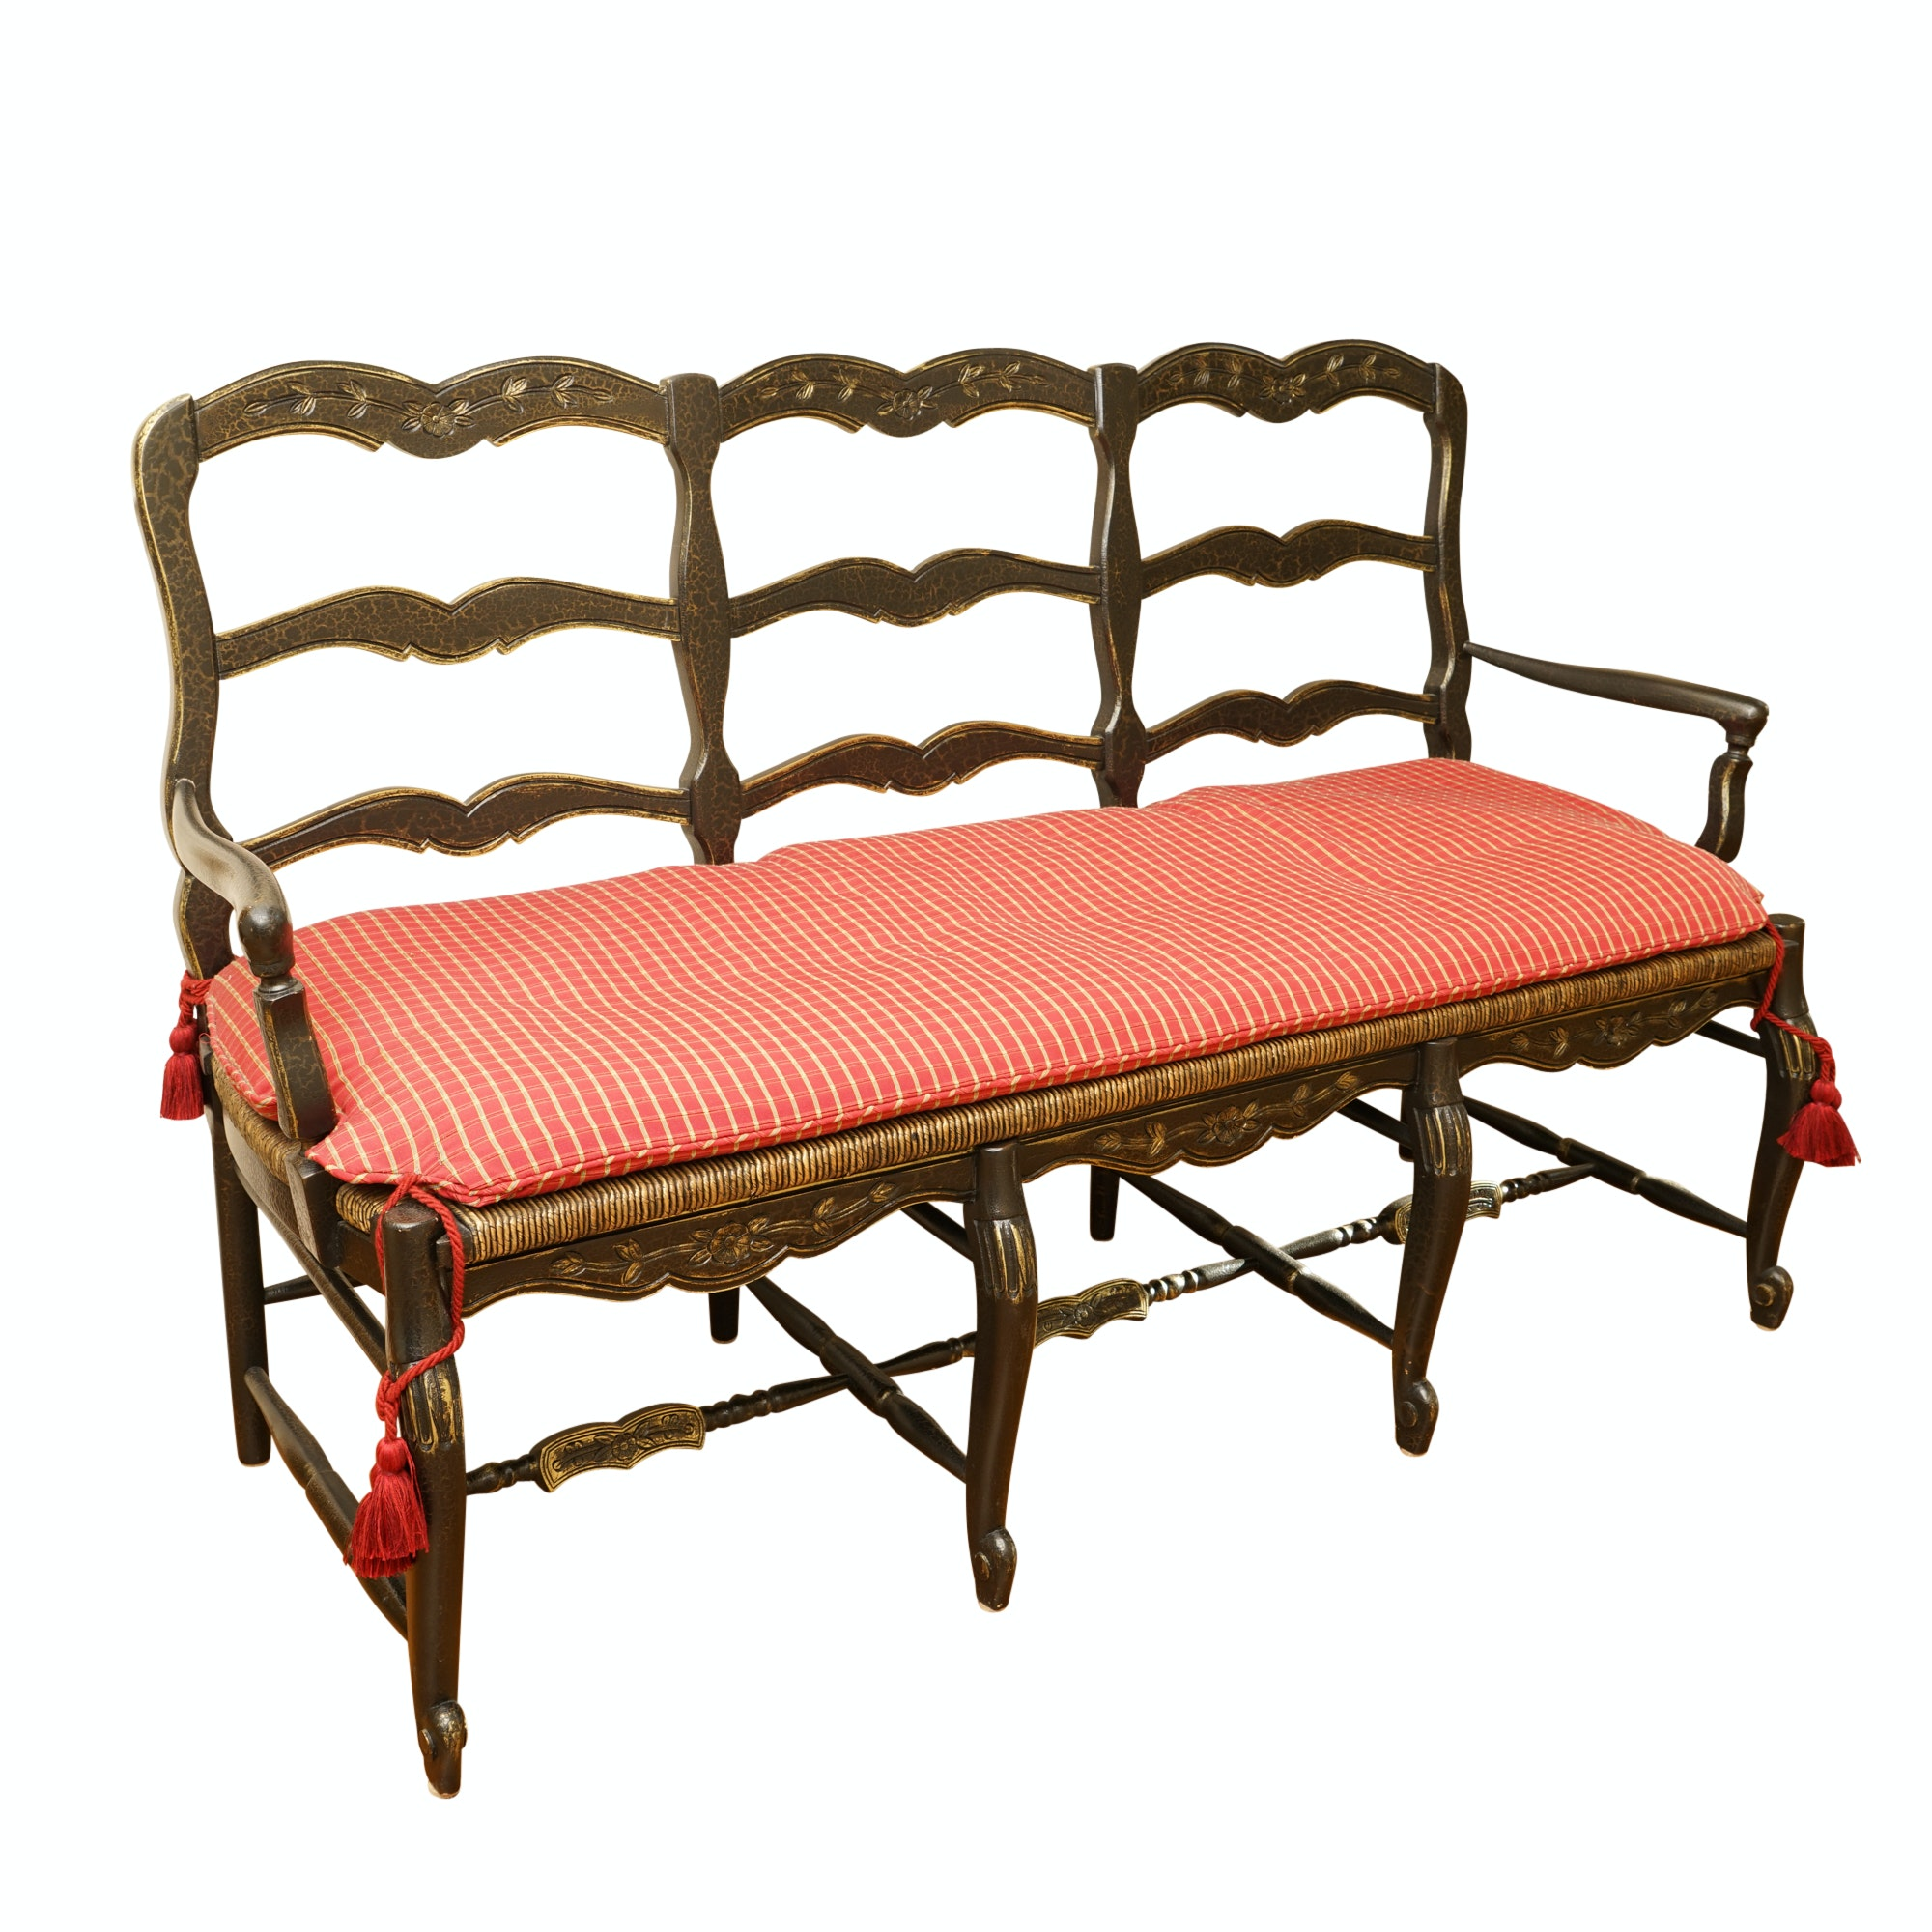 Louis XV Style Bench with Rush Seating